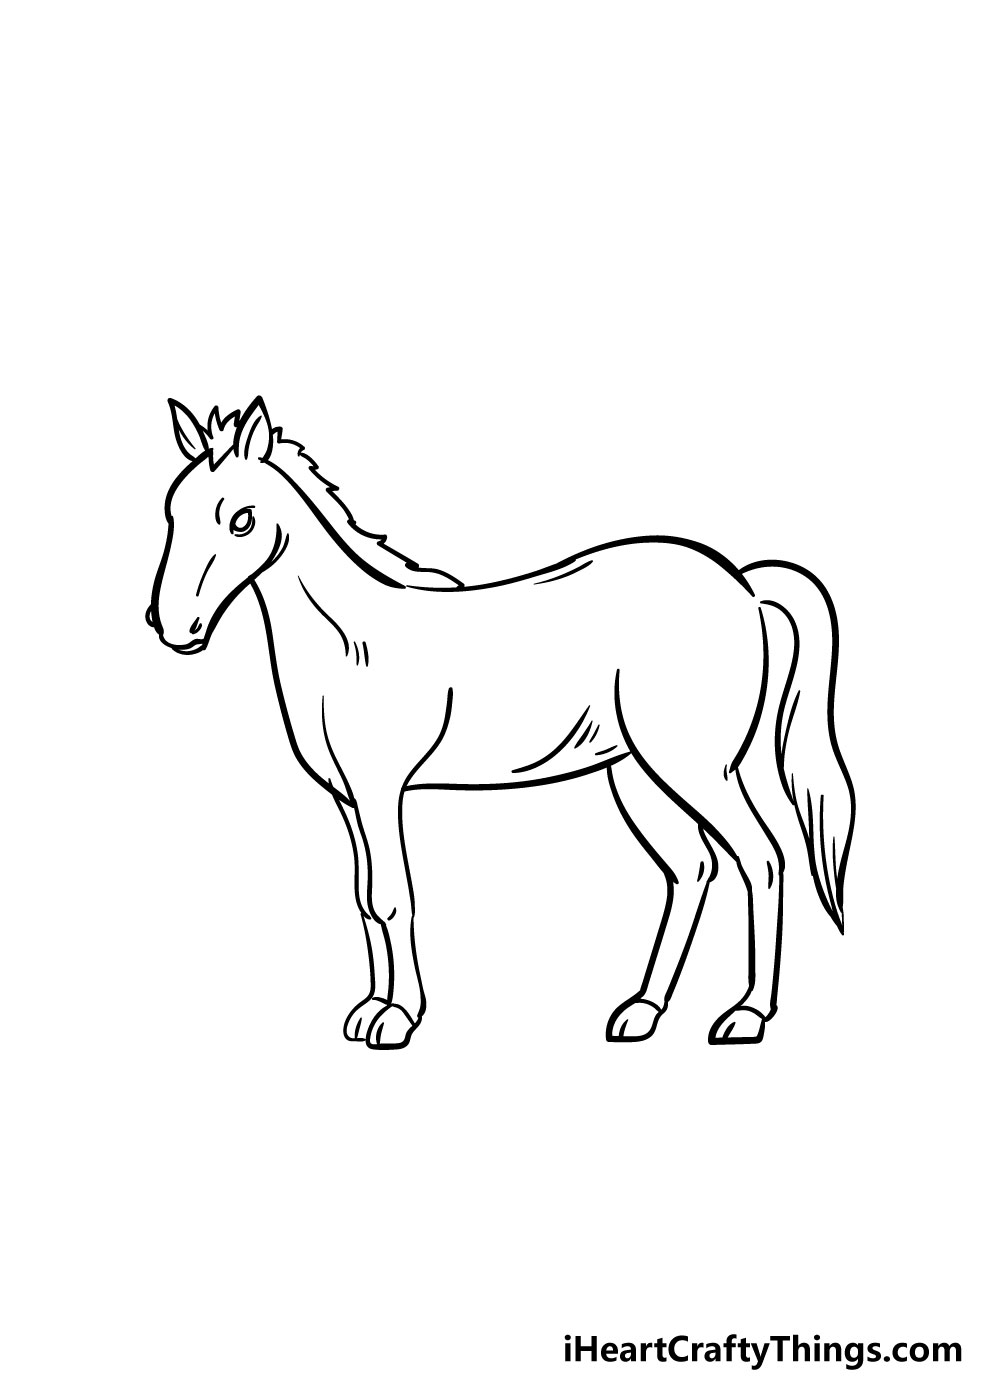 horse drawing step 8